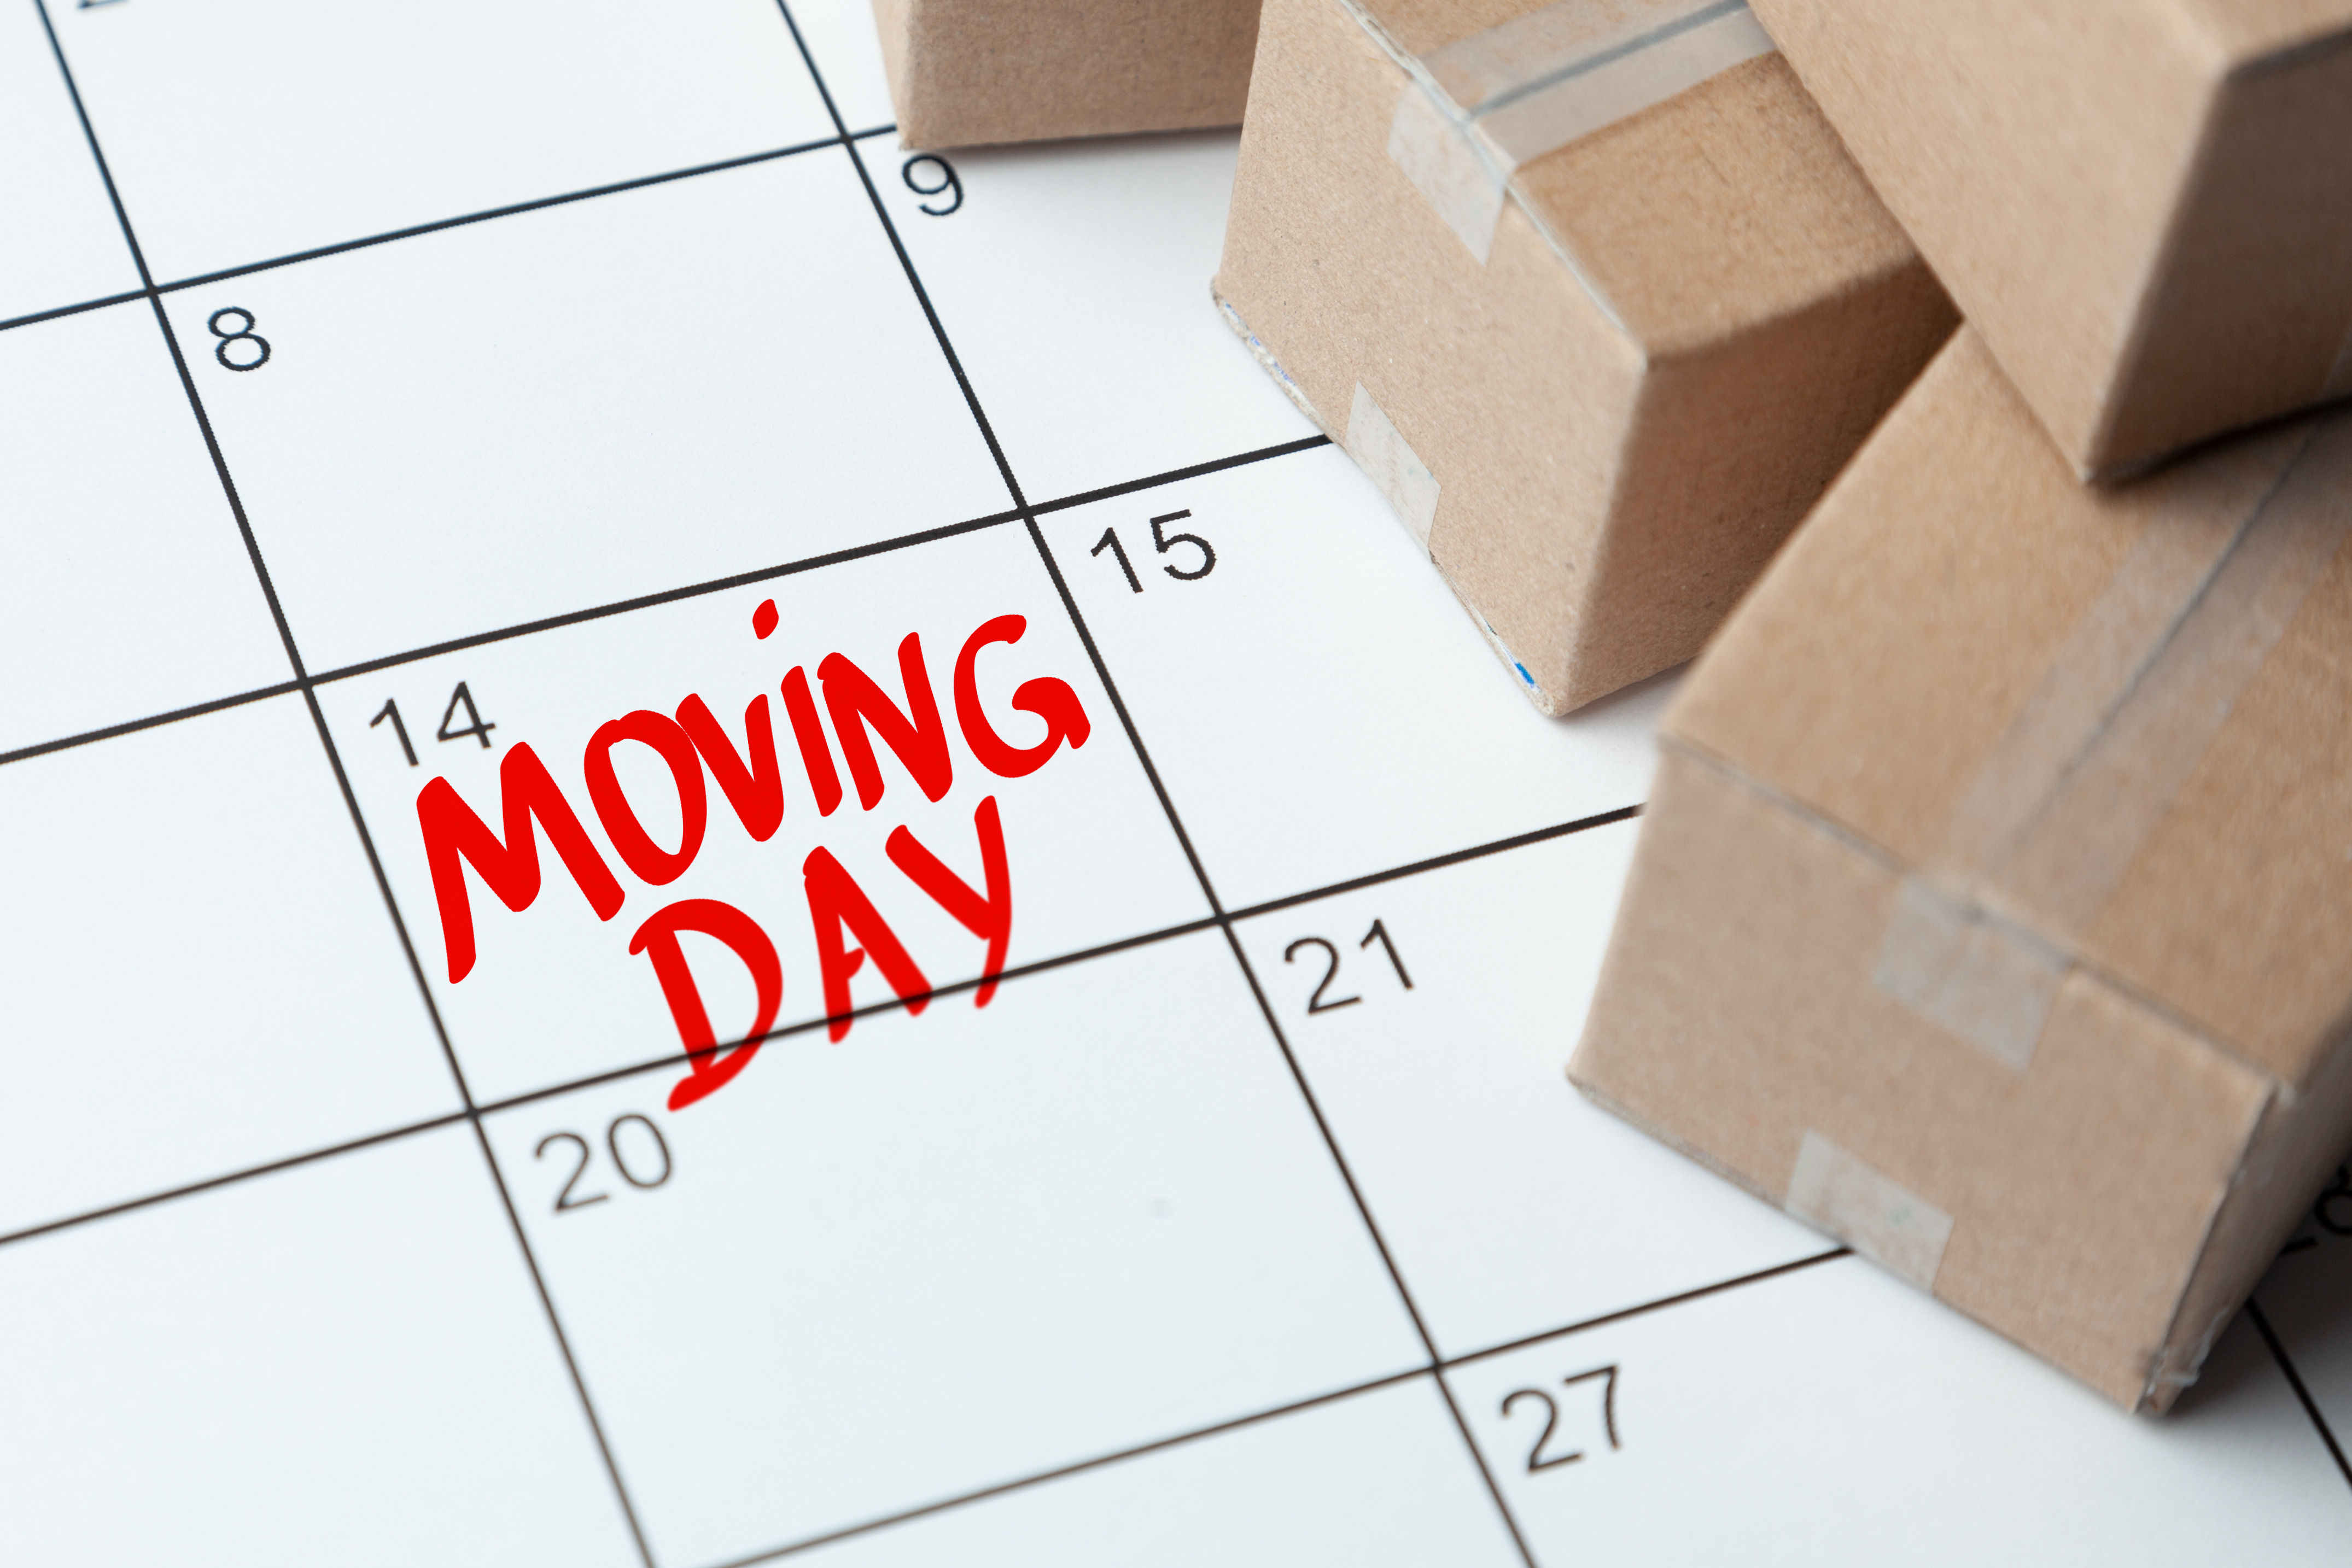 Moving day on the calendar